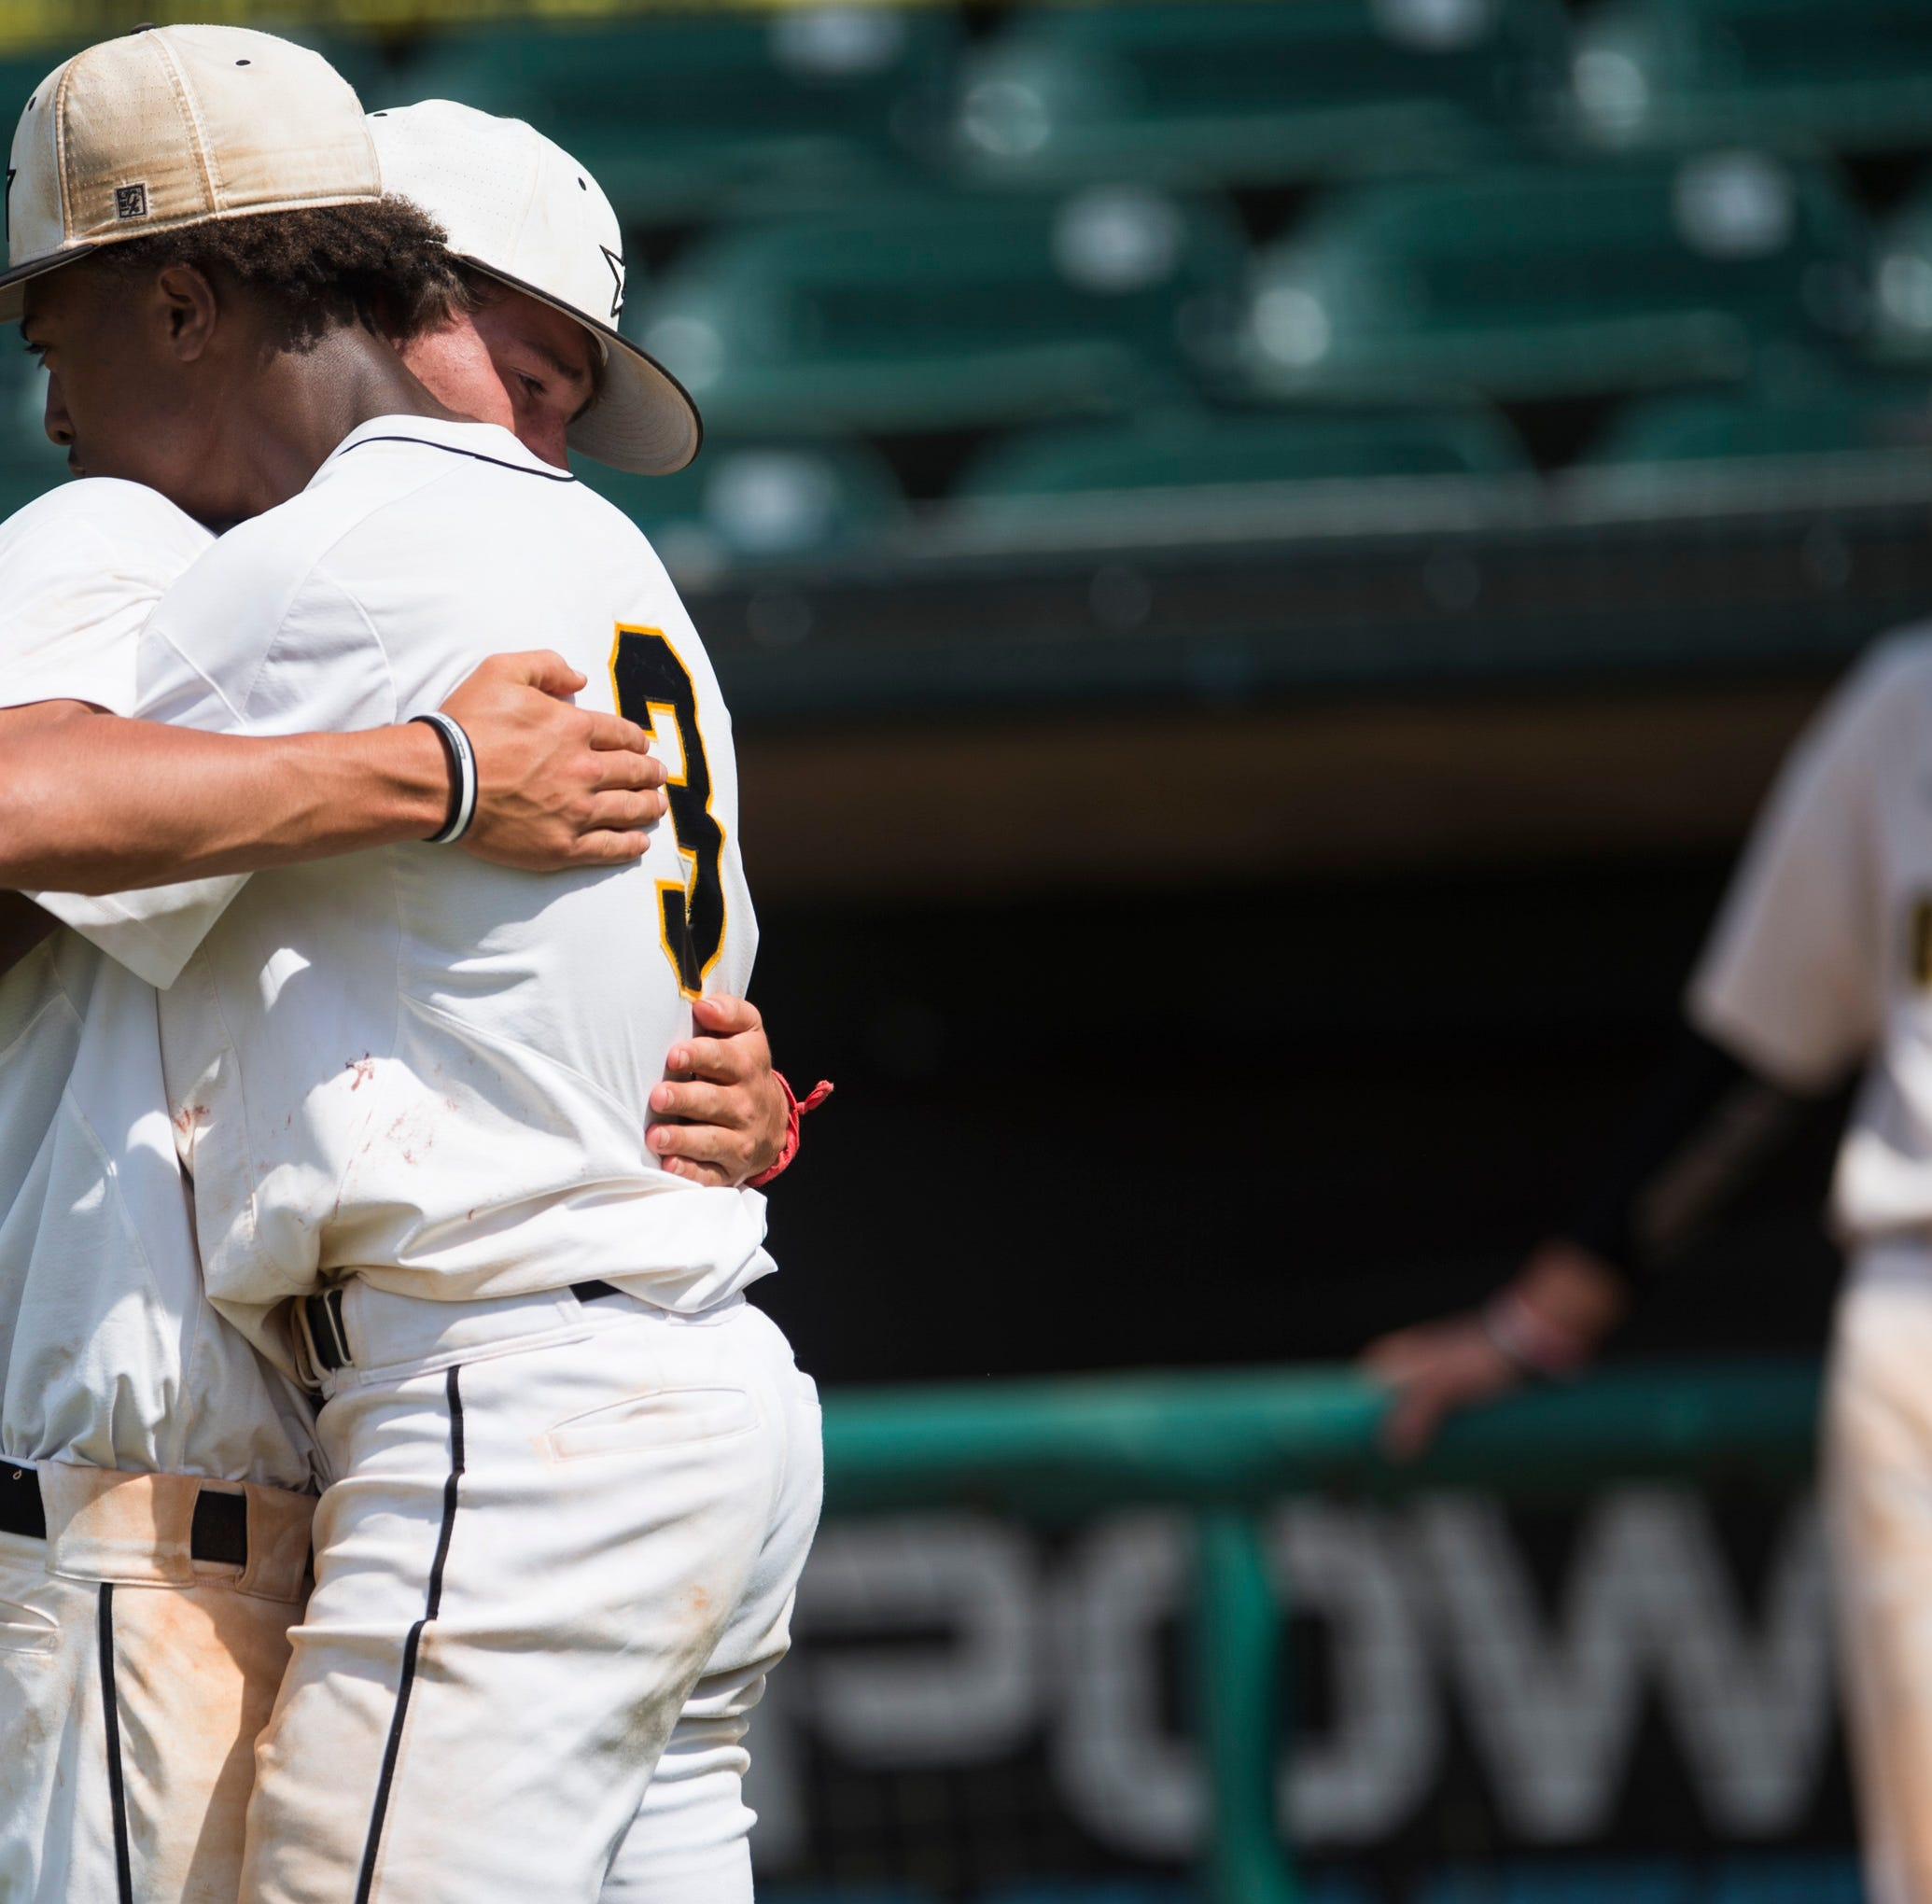 Feeling gray: Autauga baseball again a state runner-up